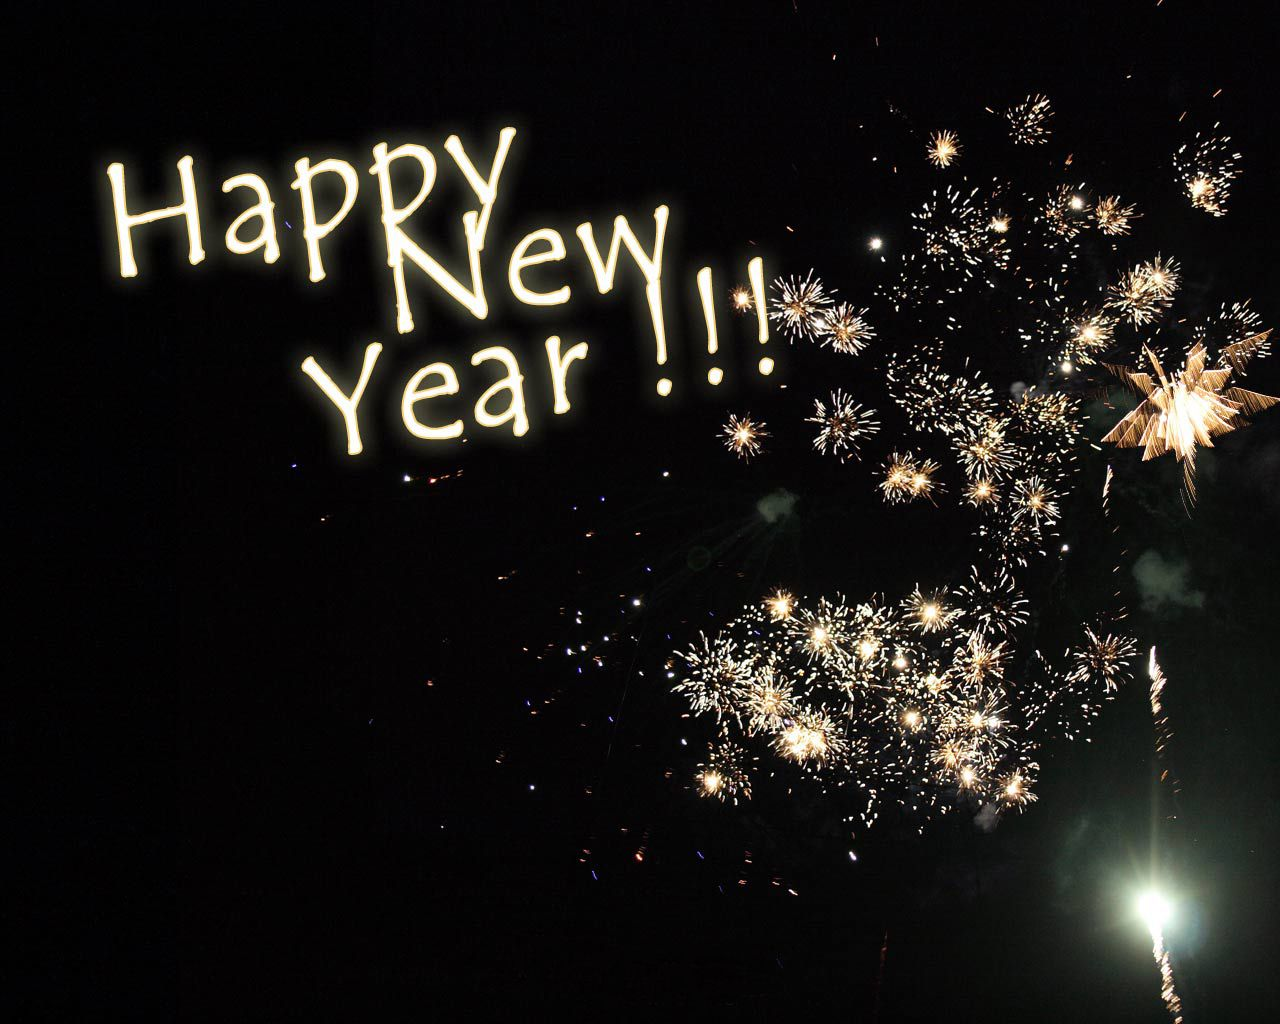 New Year Wallpaper Collection For Free Download | HD Wallpapers ...